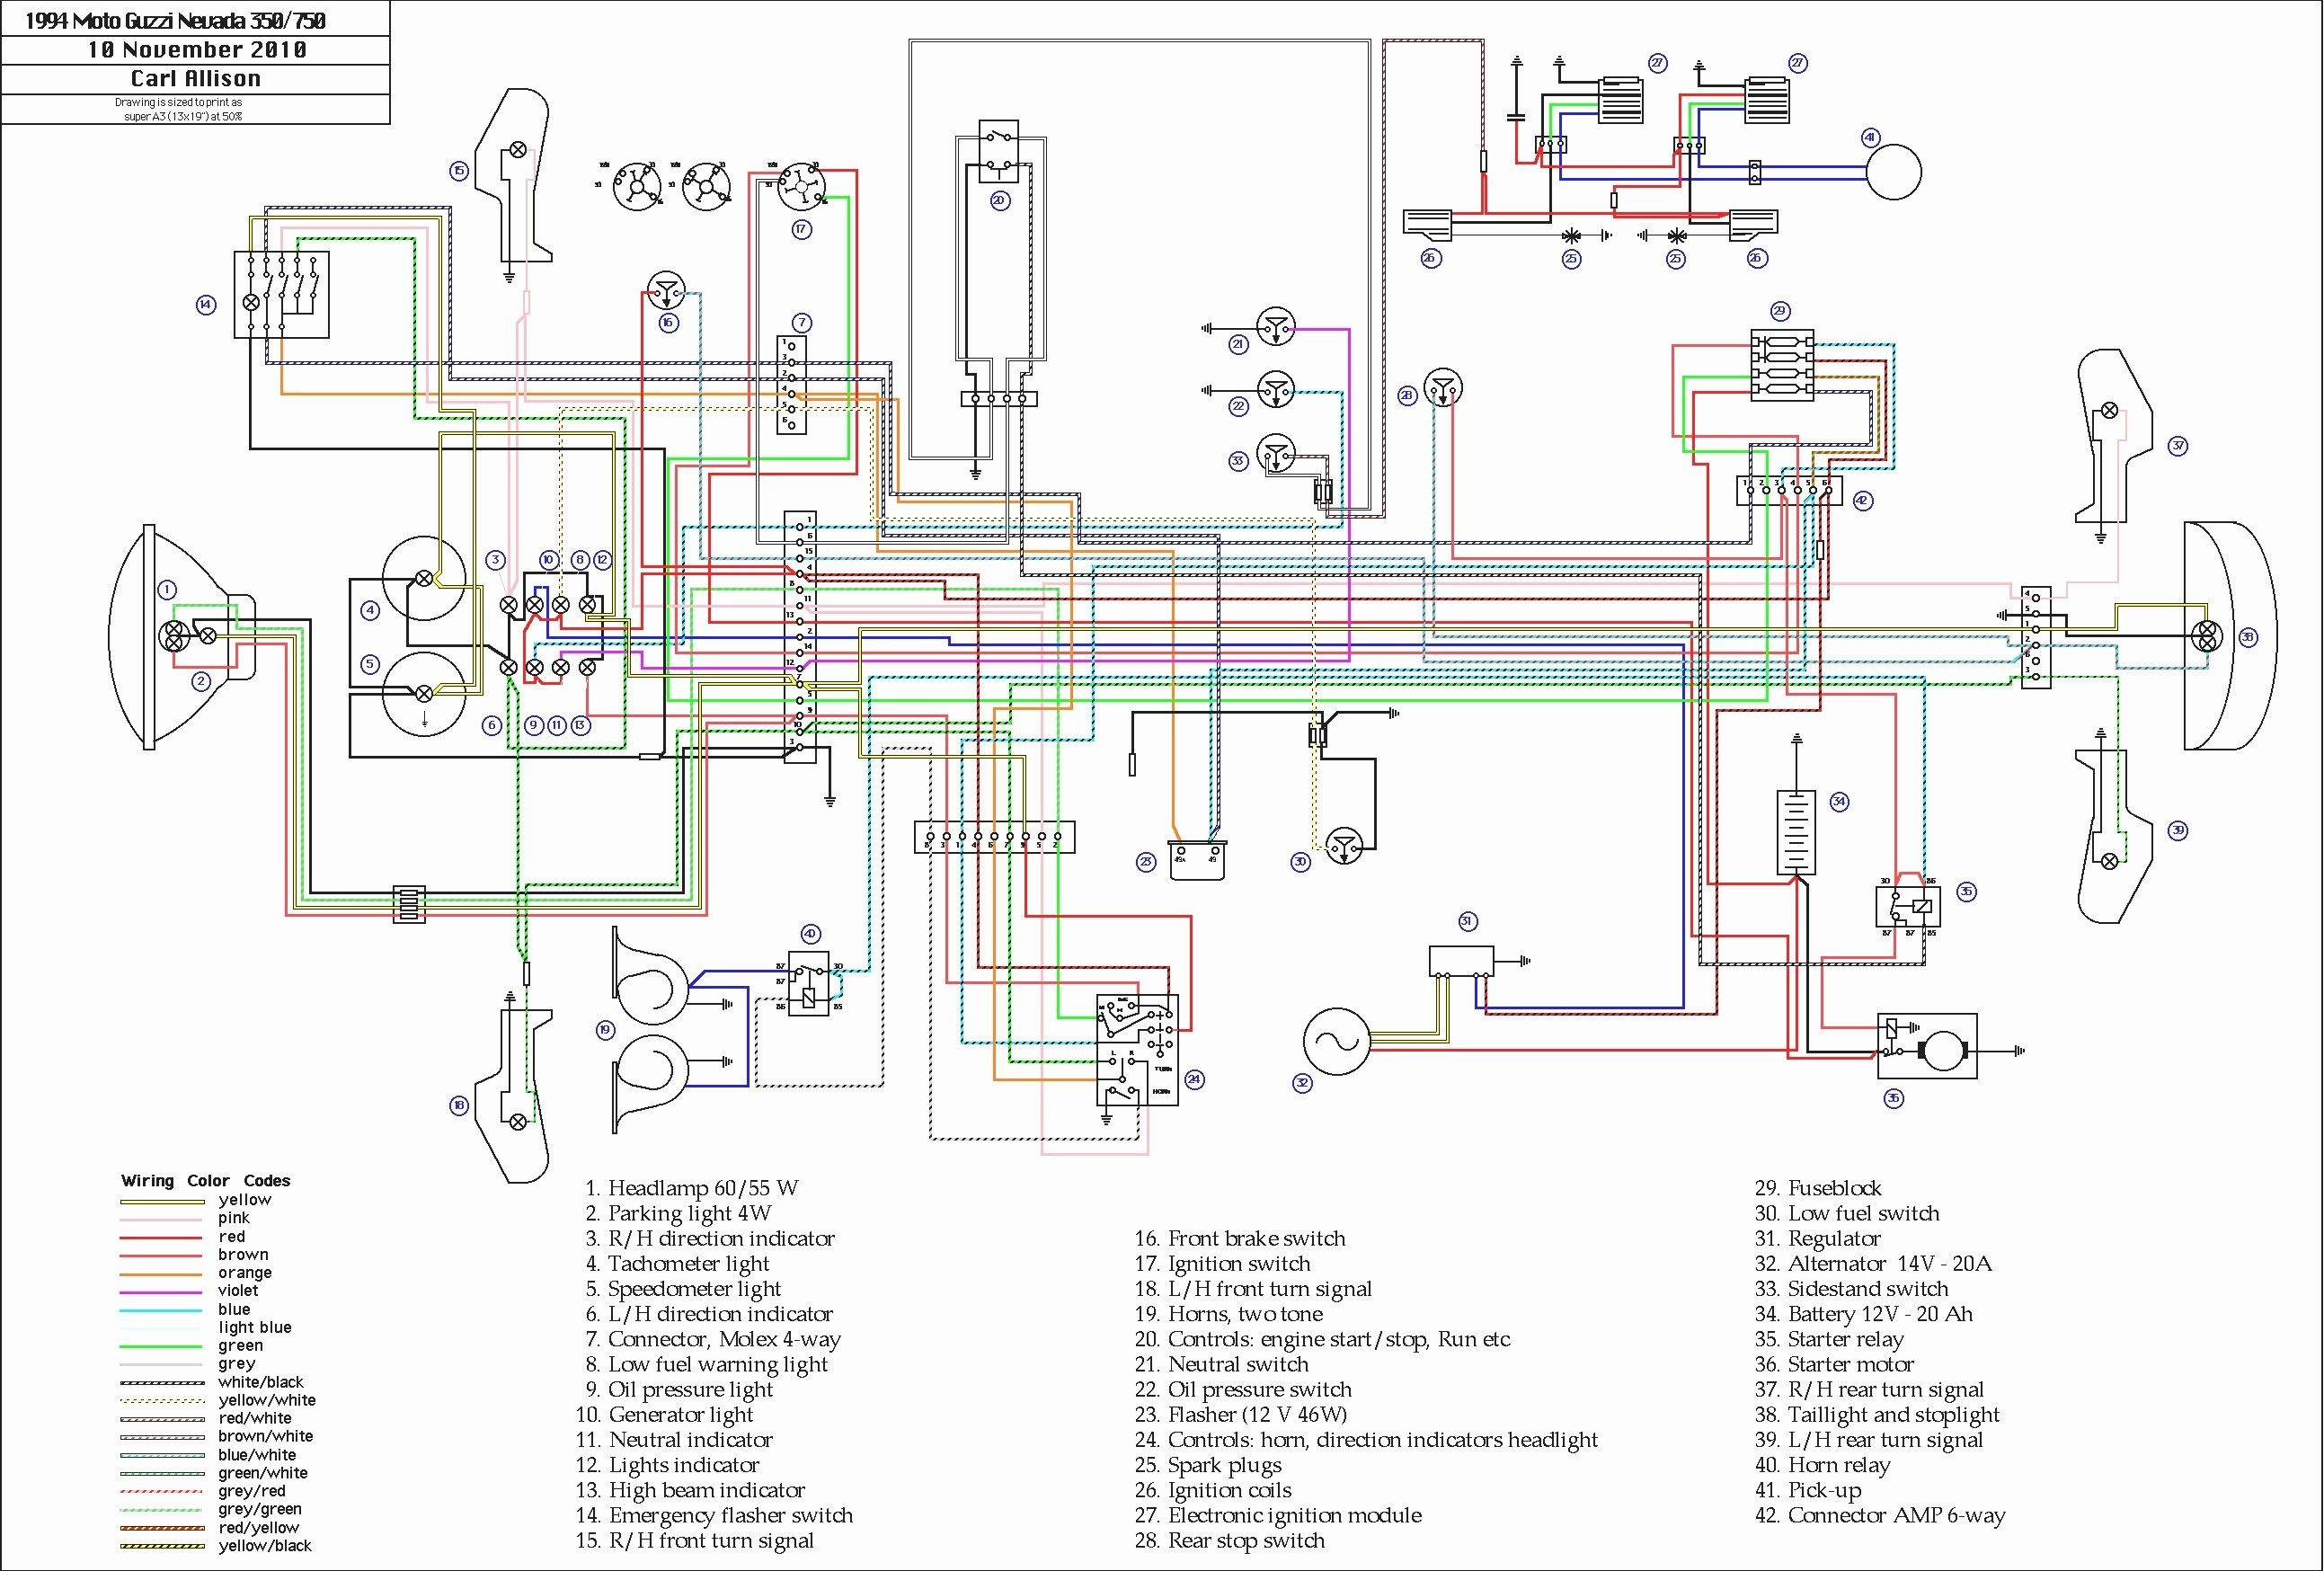 Unique Wiring Diagram For Emergency Stop Button Diagram Diagramsample Diagramtemplate Wiring Electrical Diagram Motorcycle Wiring Electrical Wiring Diagram